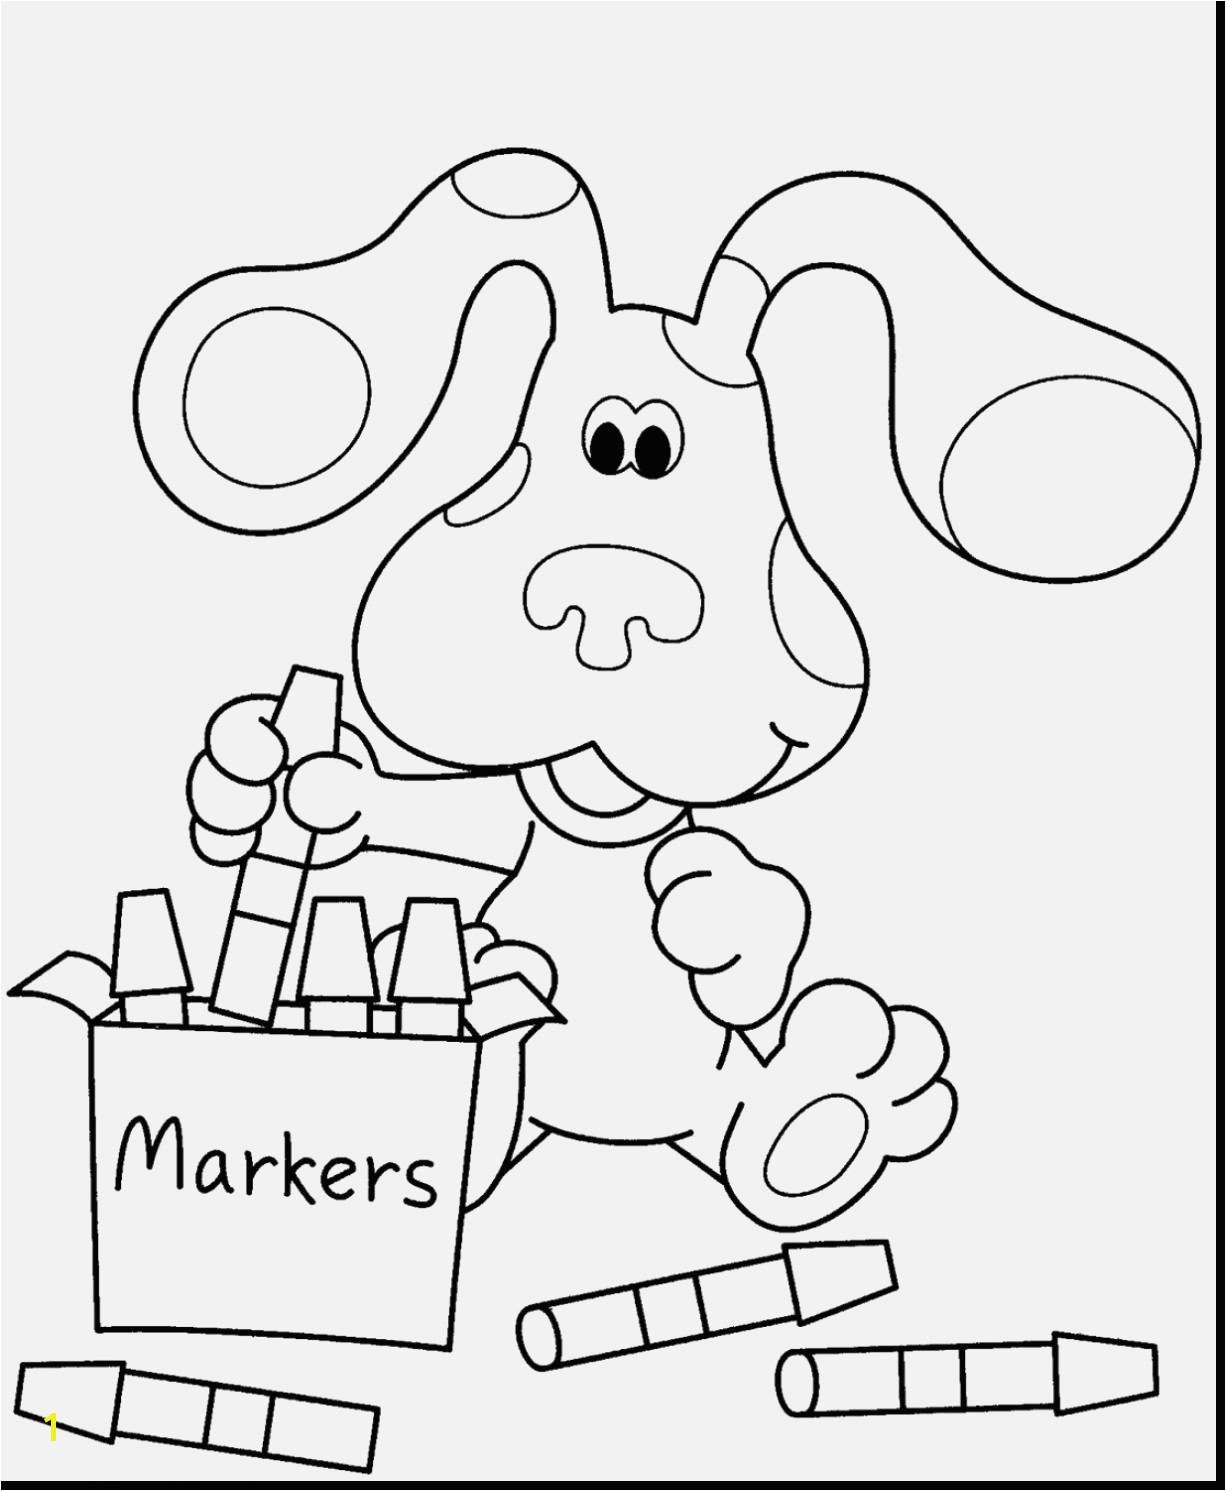 Coloring Pages Monster Trucks Easy and Fun Printable Coloring Pages Monster Trucks